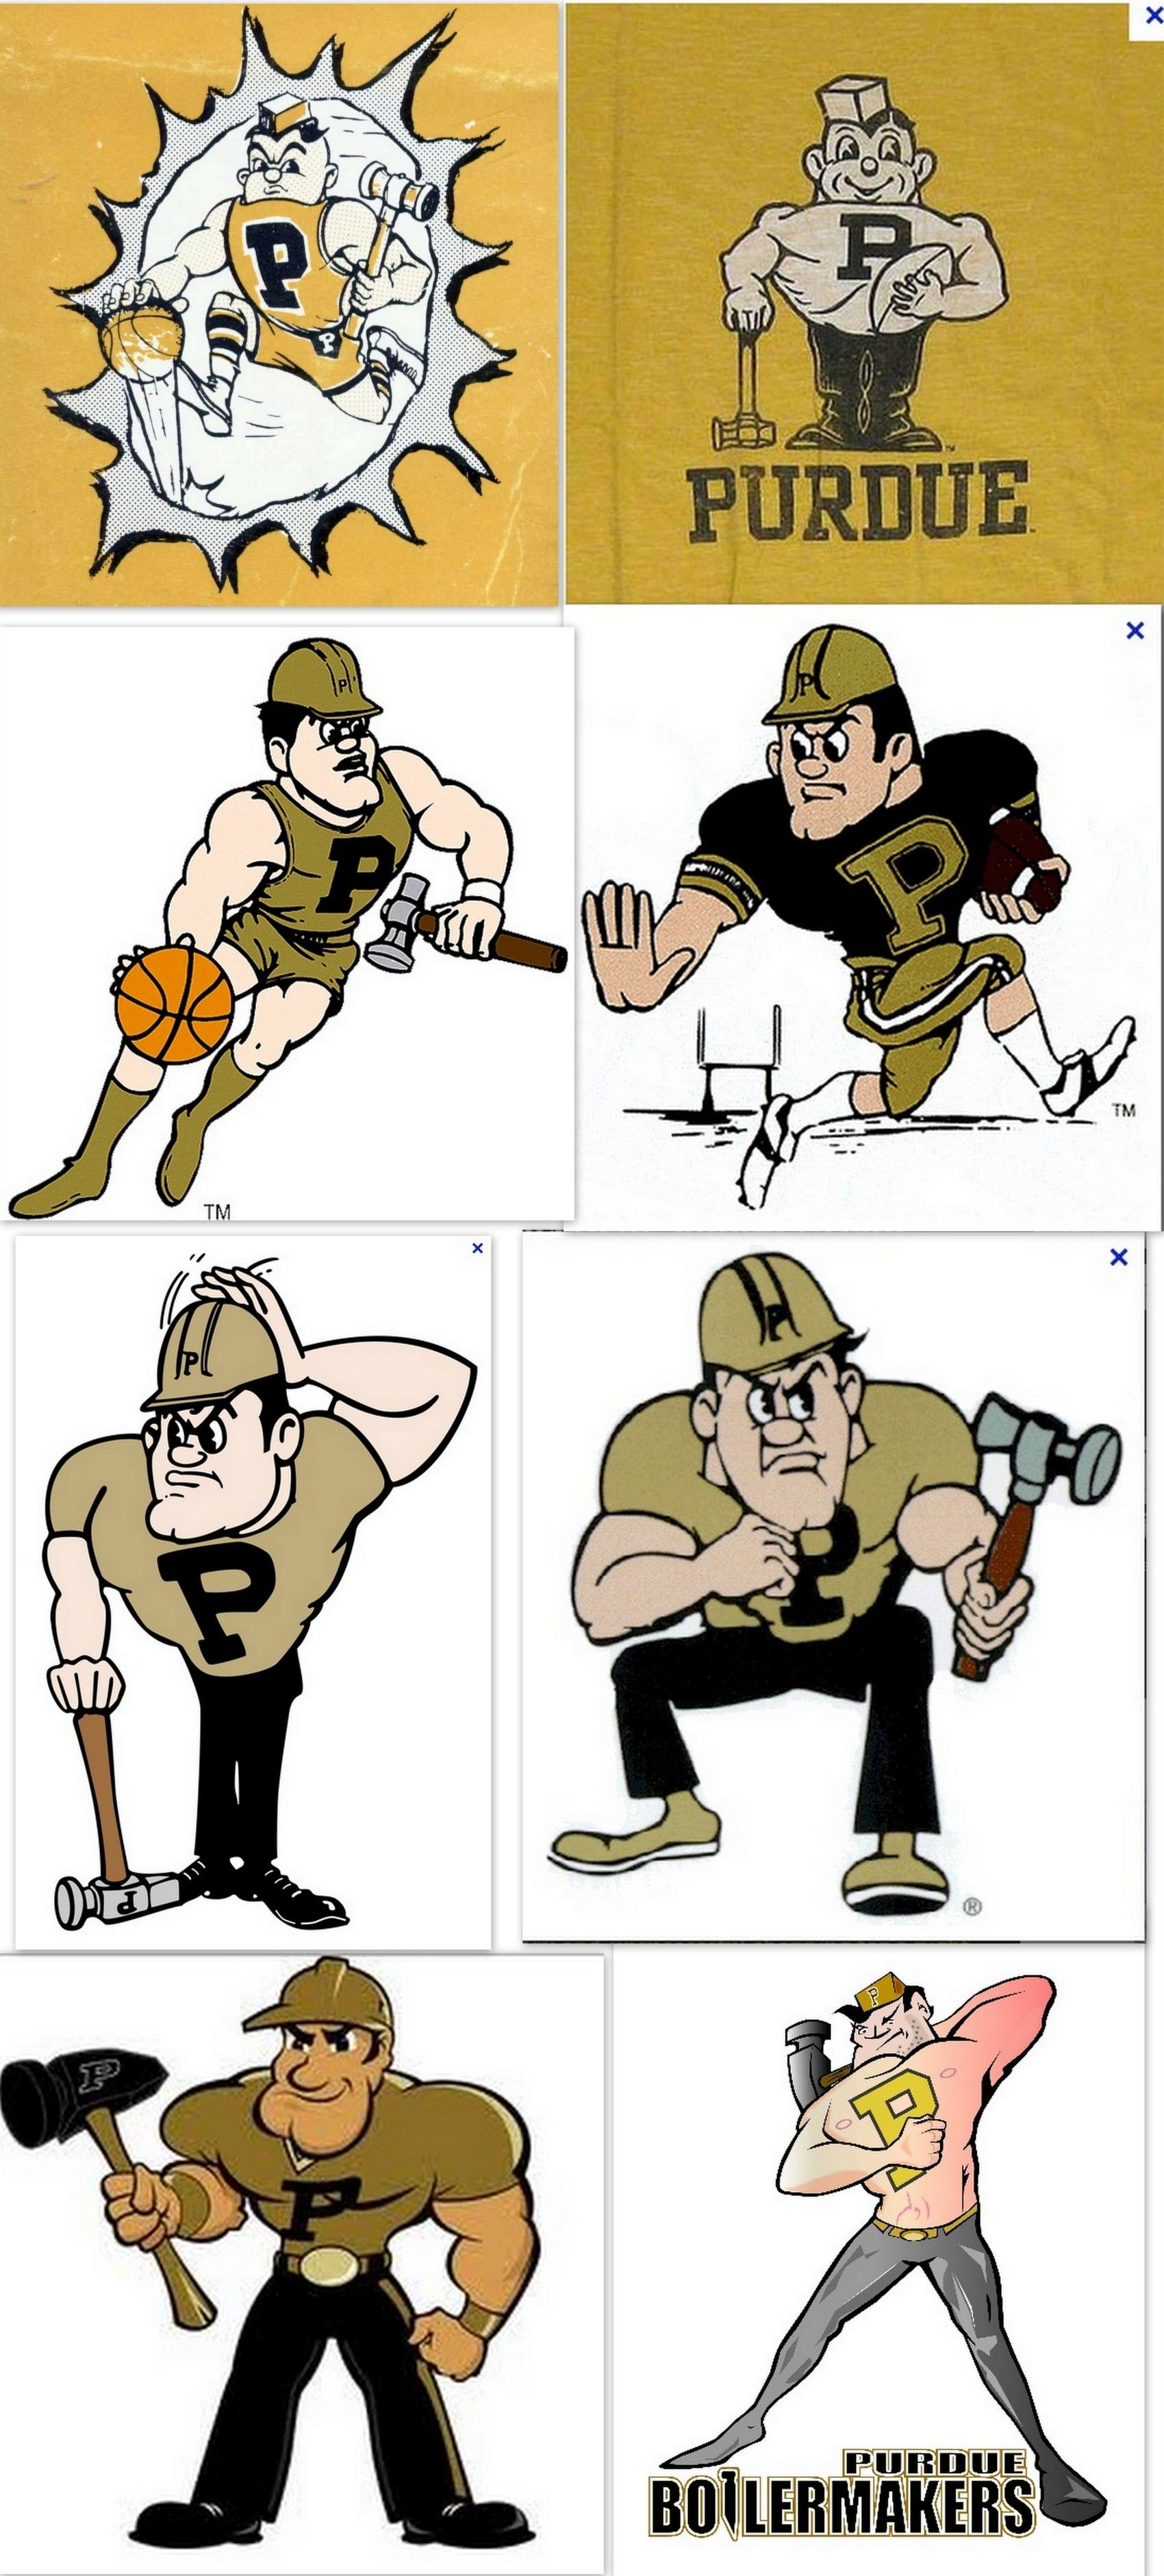 Color printing purdue - The Many Faces Of Purdue Pete Looks Like They Are Trying To Marvelize Him